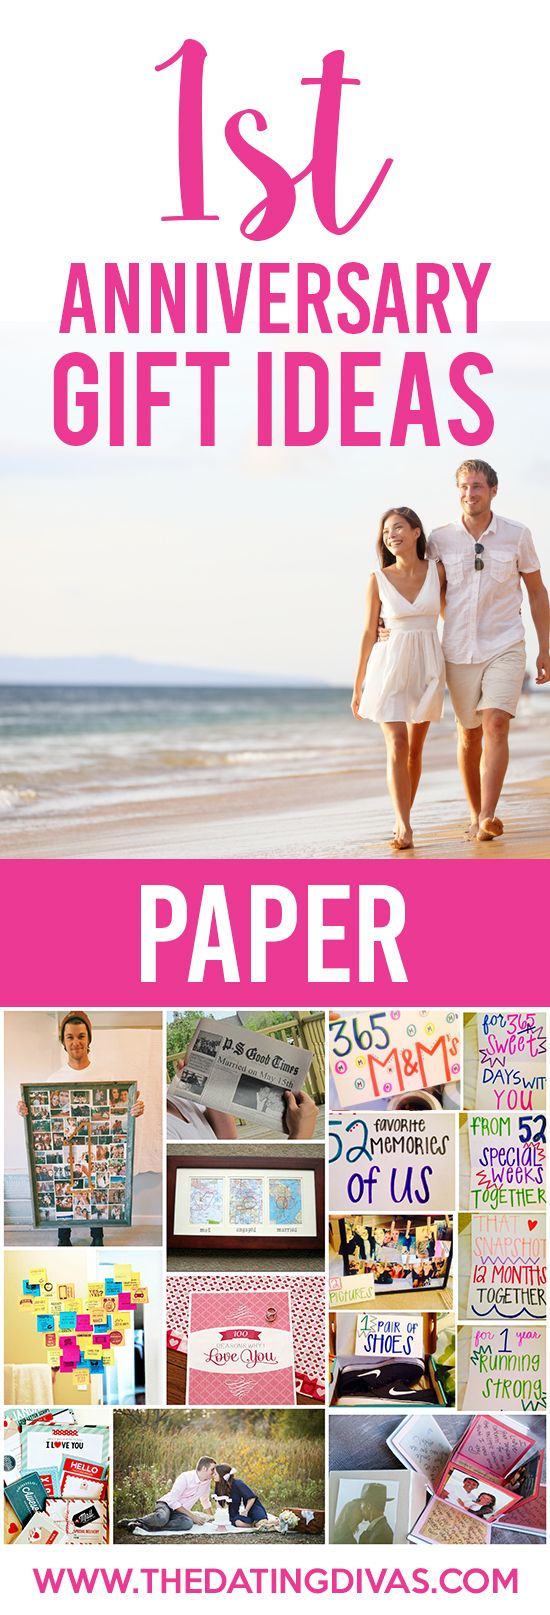 Fun Ways To Spend Your First Wedding Anniversary And Anniversaries